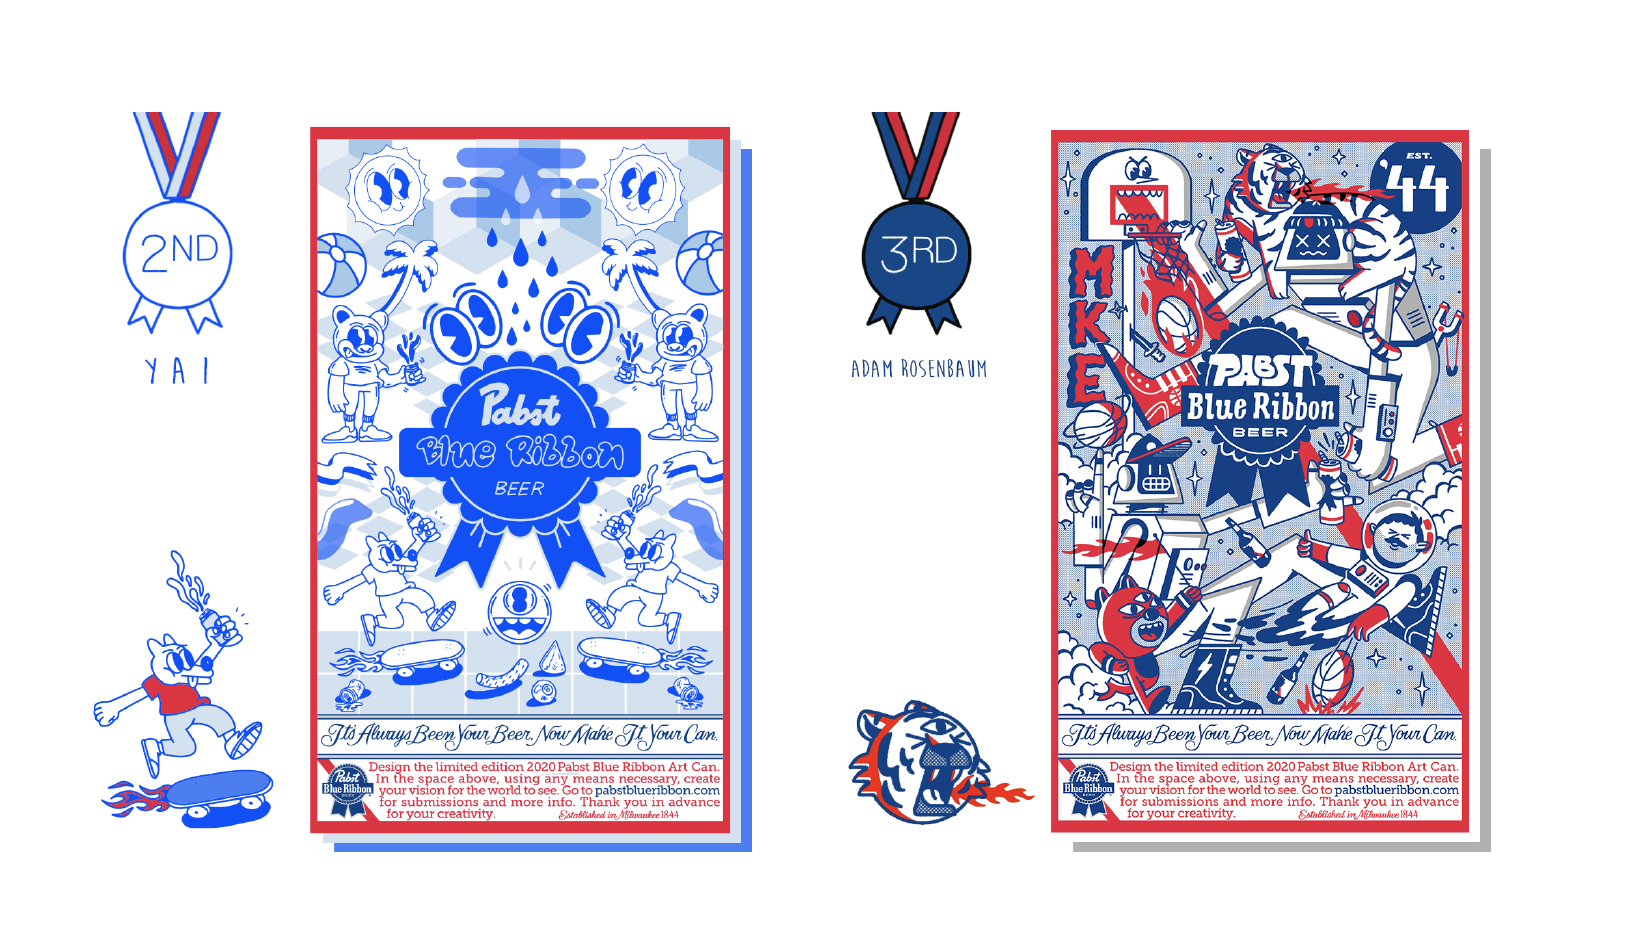 2020 Pabst Blue Ribbon Art Can Contest 2nd Place from Yahira Vila and 3rd Place from Adam Rosenbaum